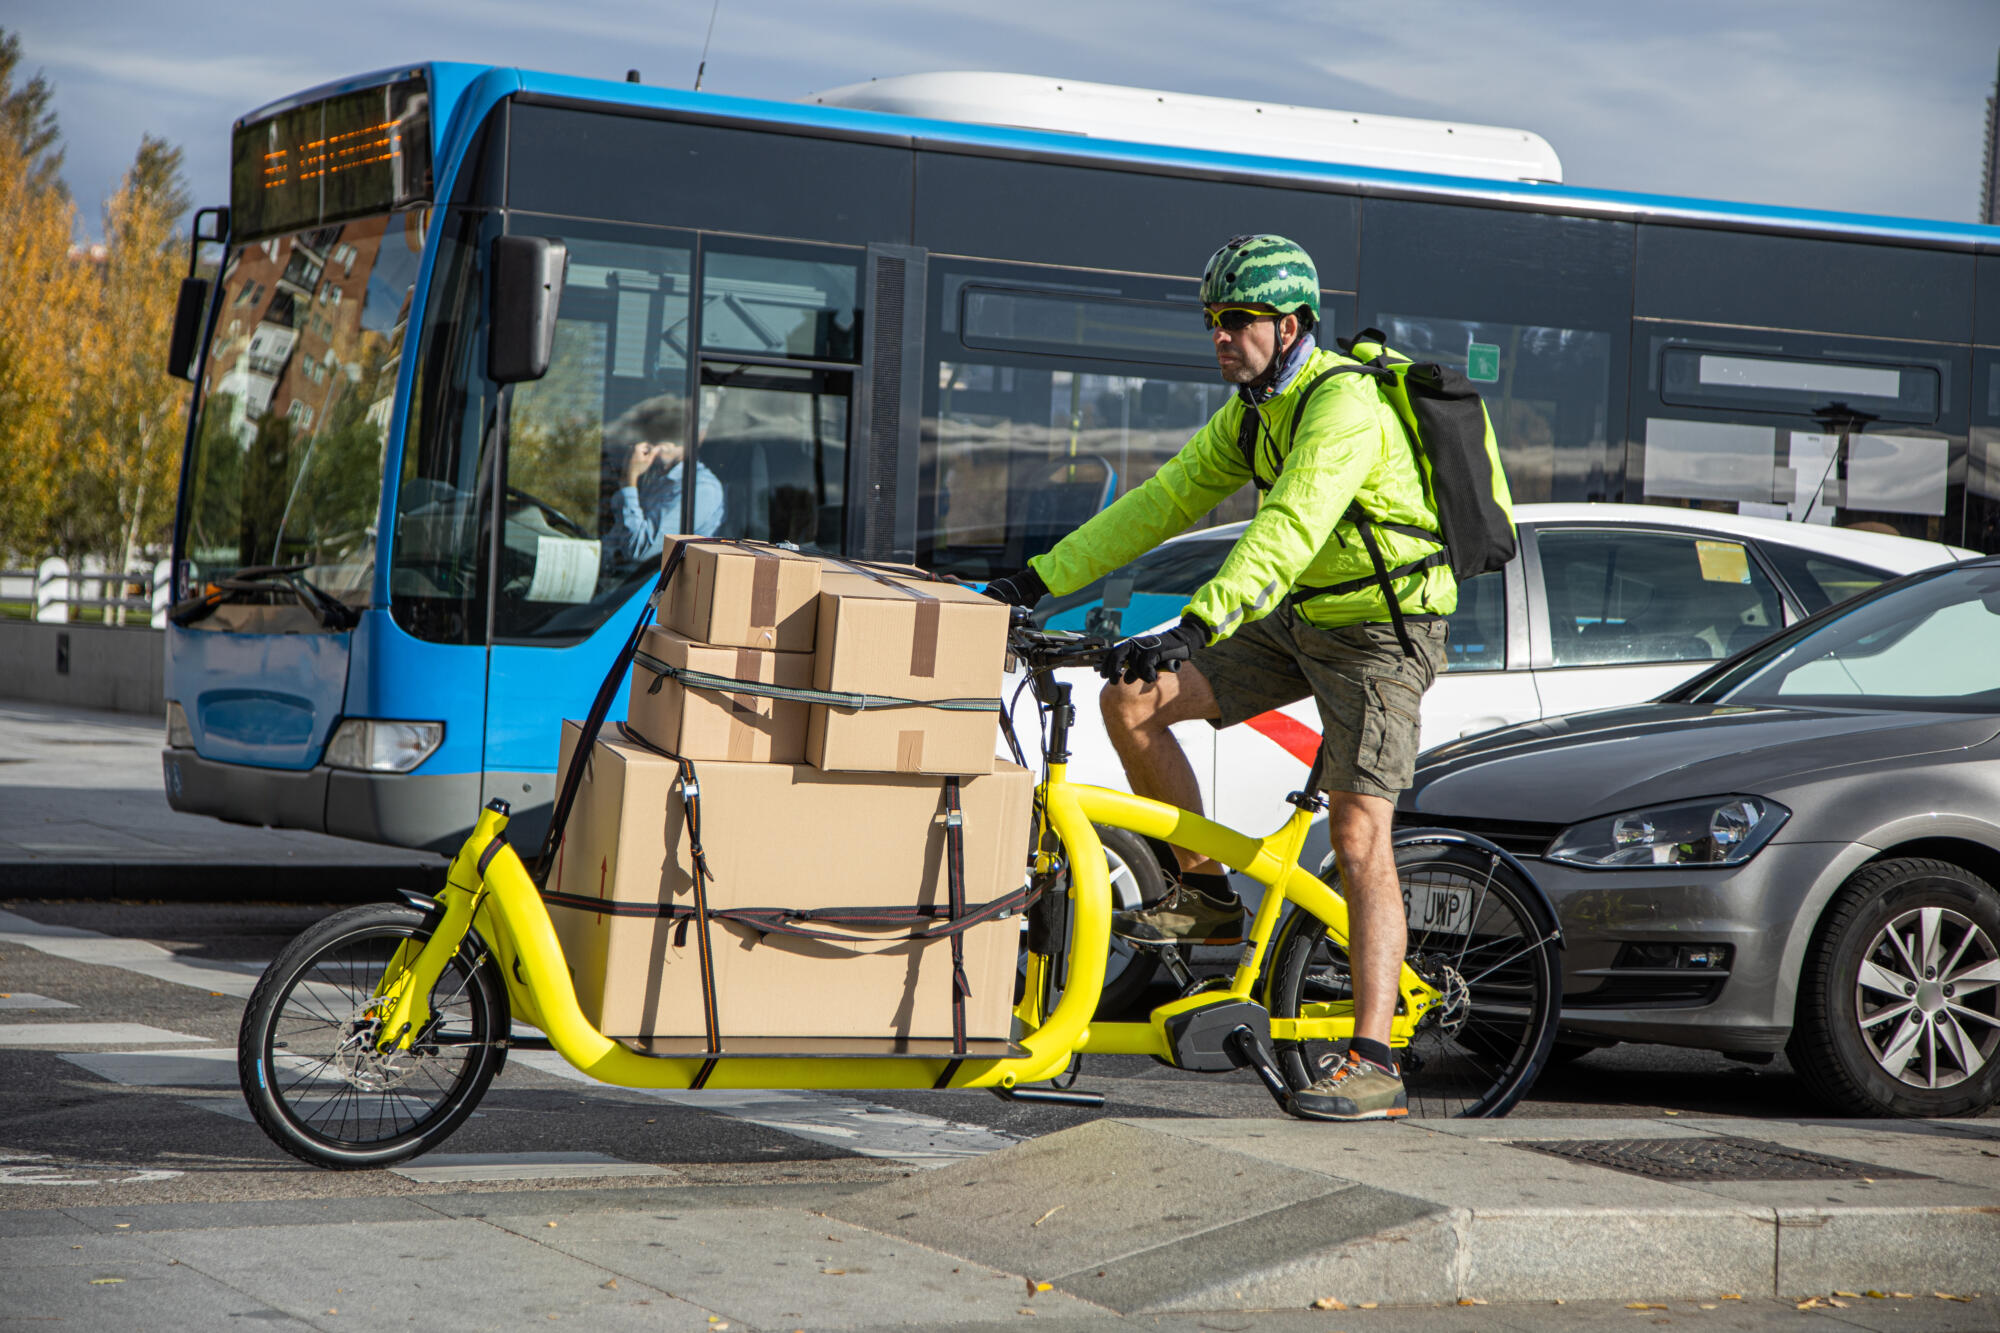 MOVE21: European cities lead transition to zero-emission transport in urban areas